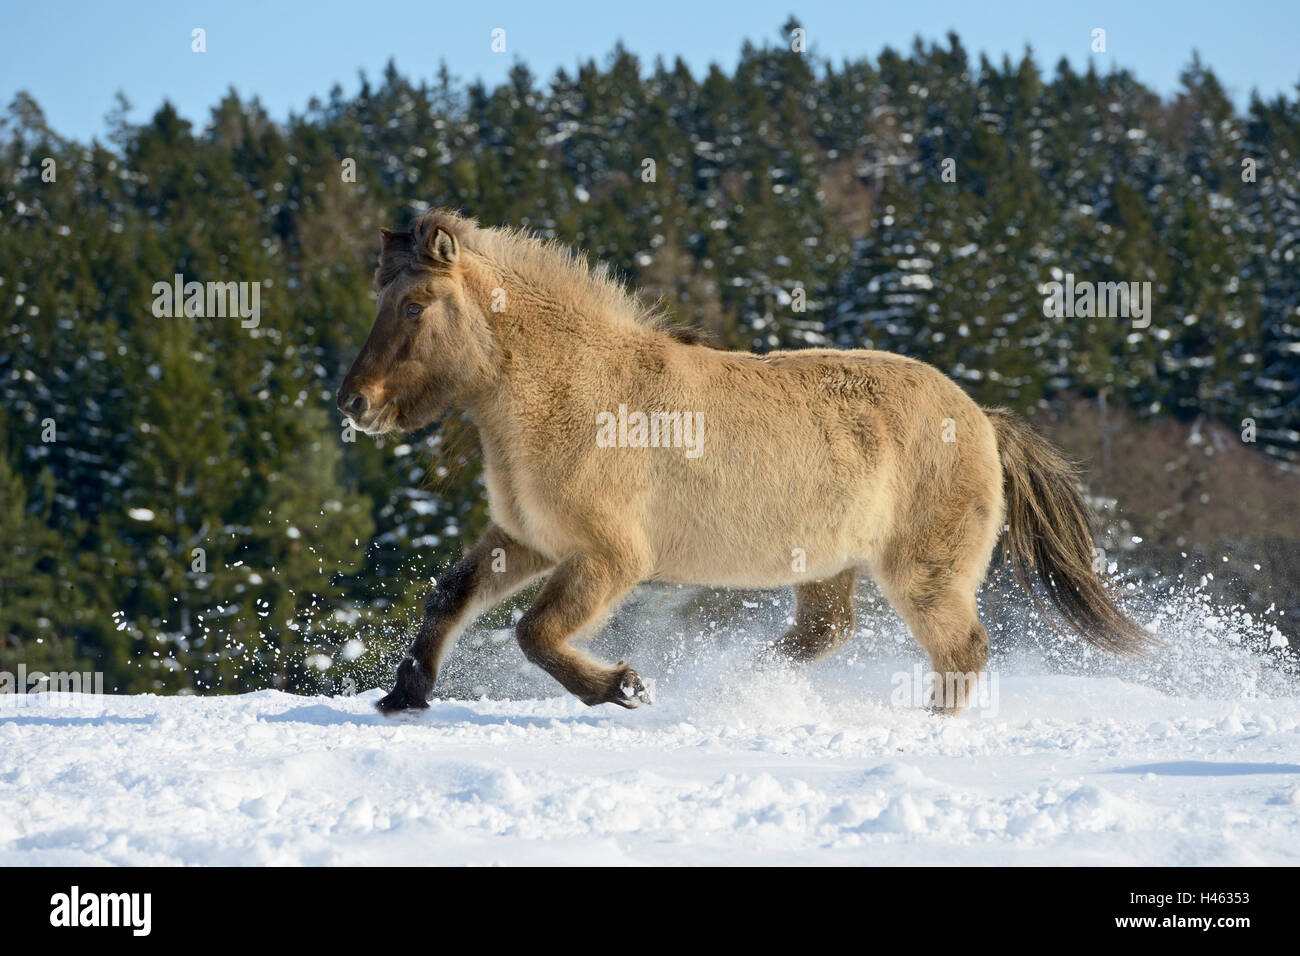 Icelandic horse (dun) galloping in snow - Stock Image